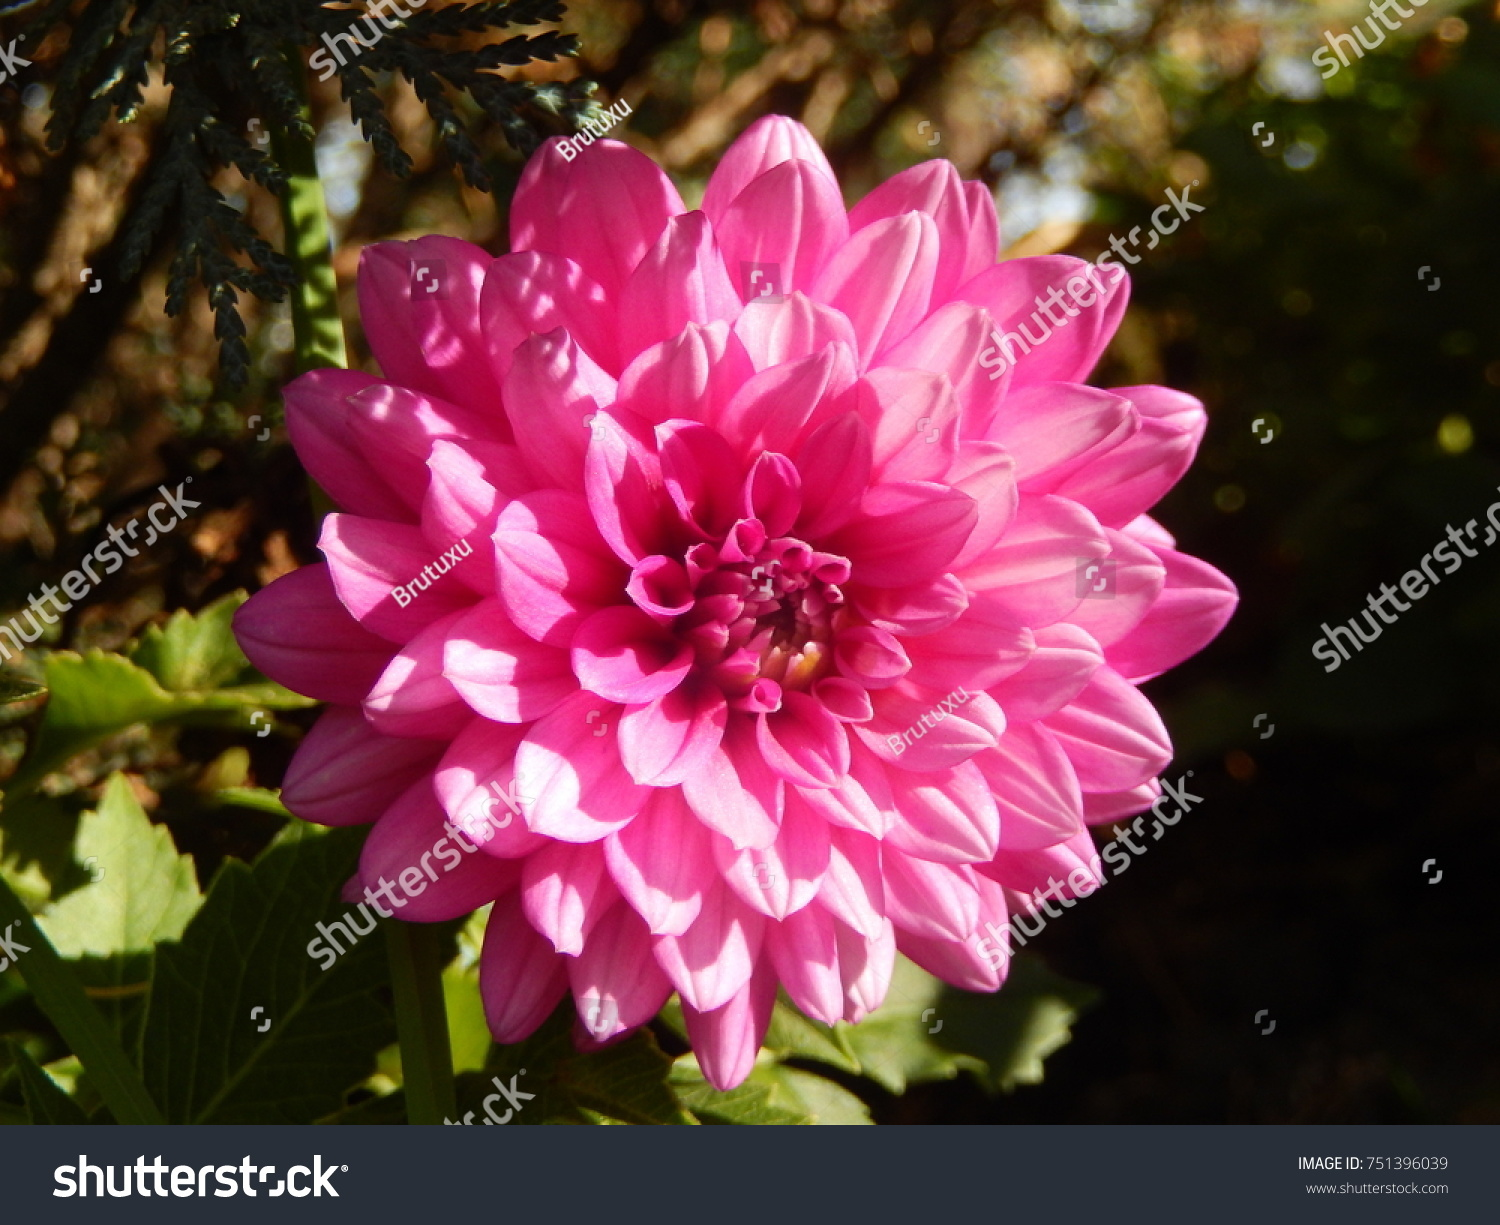 Very beautiful flowers stock photo royalty free 751396039 very beautiful flowers izmirmasajfo